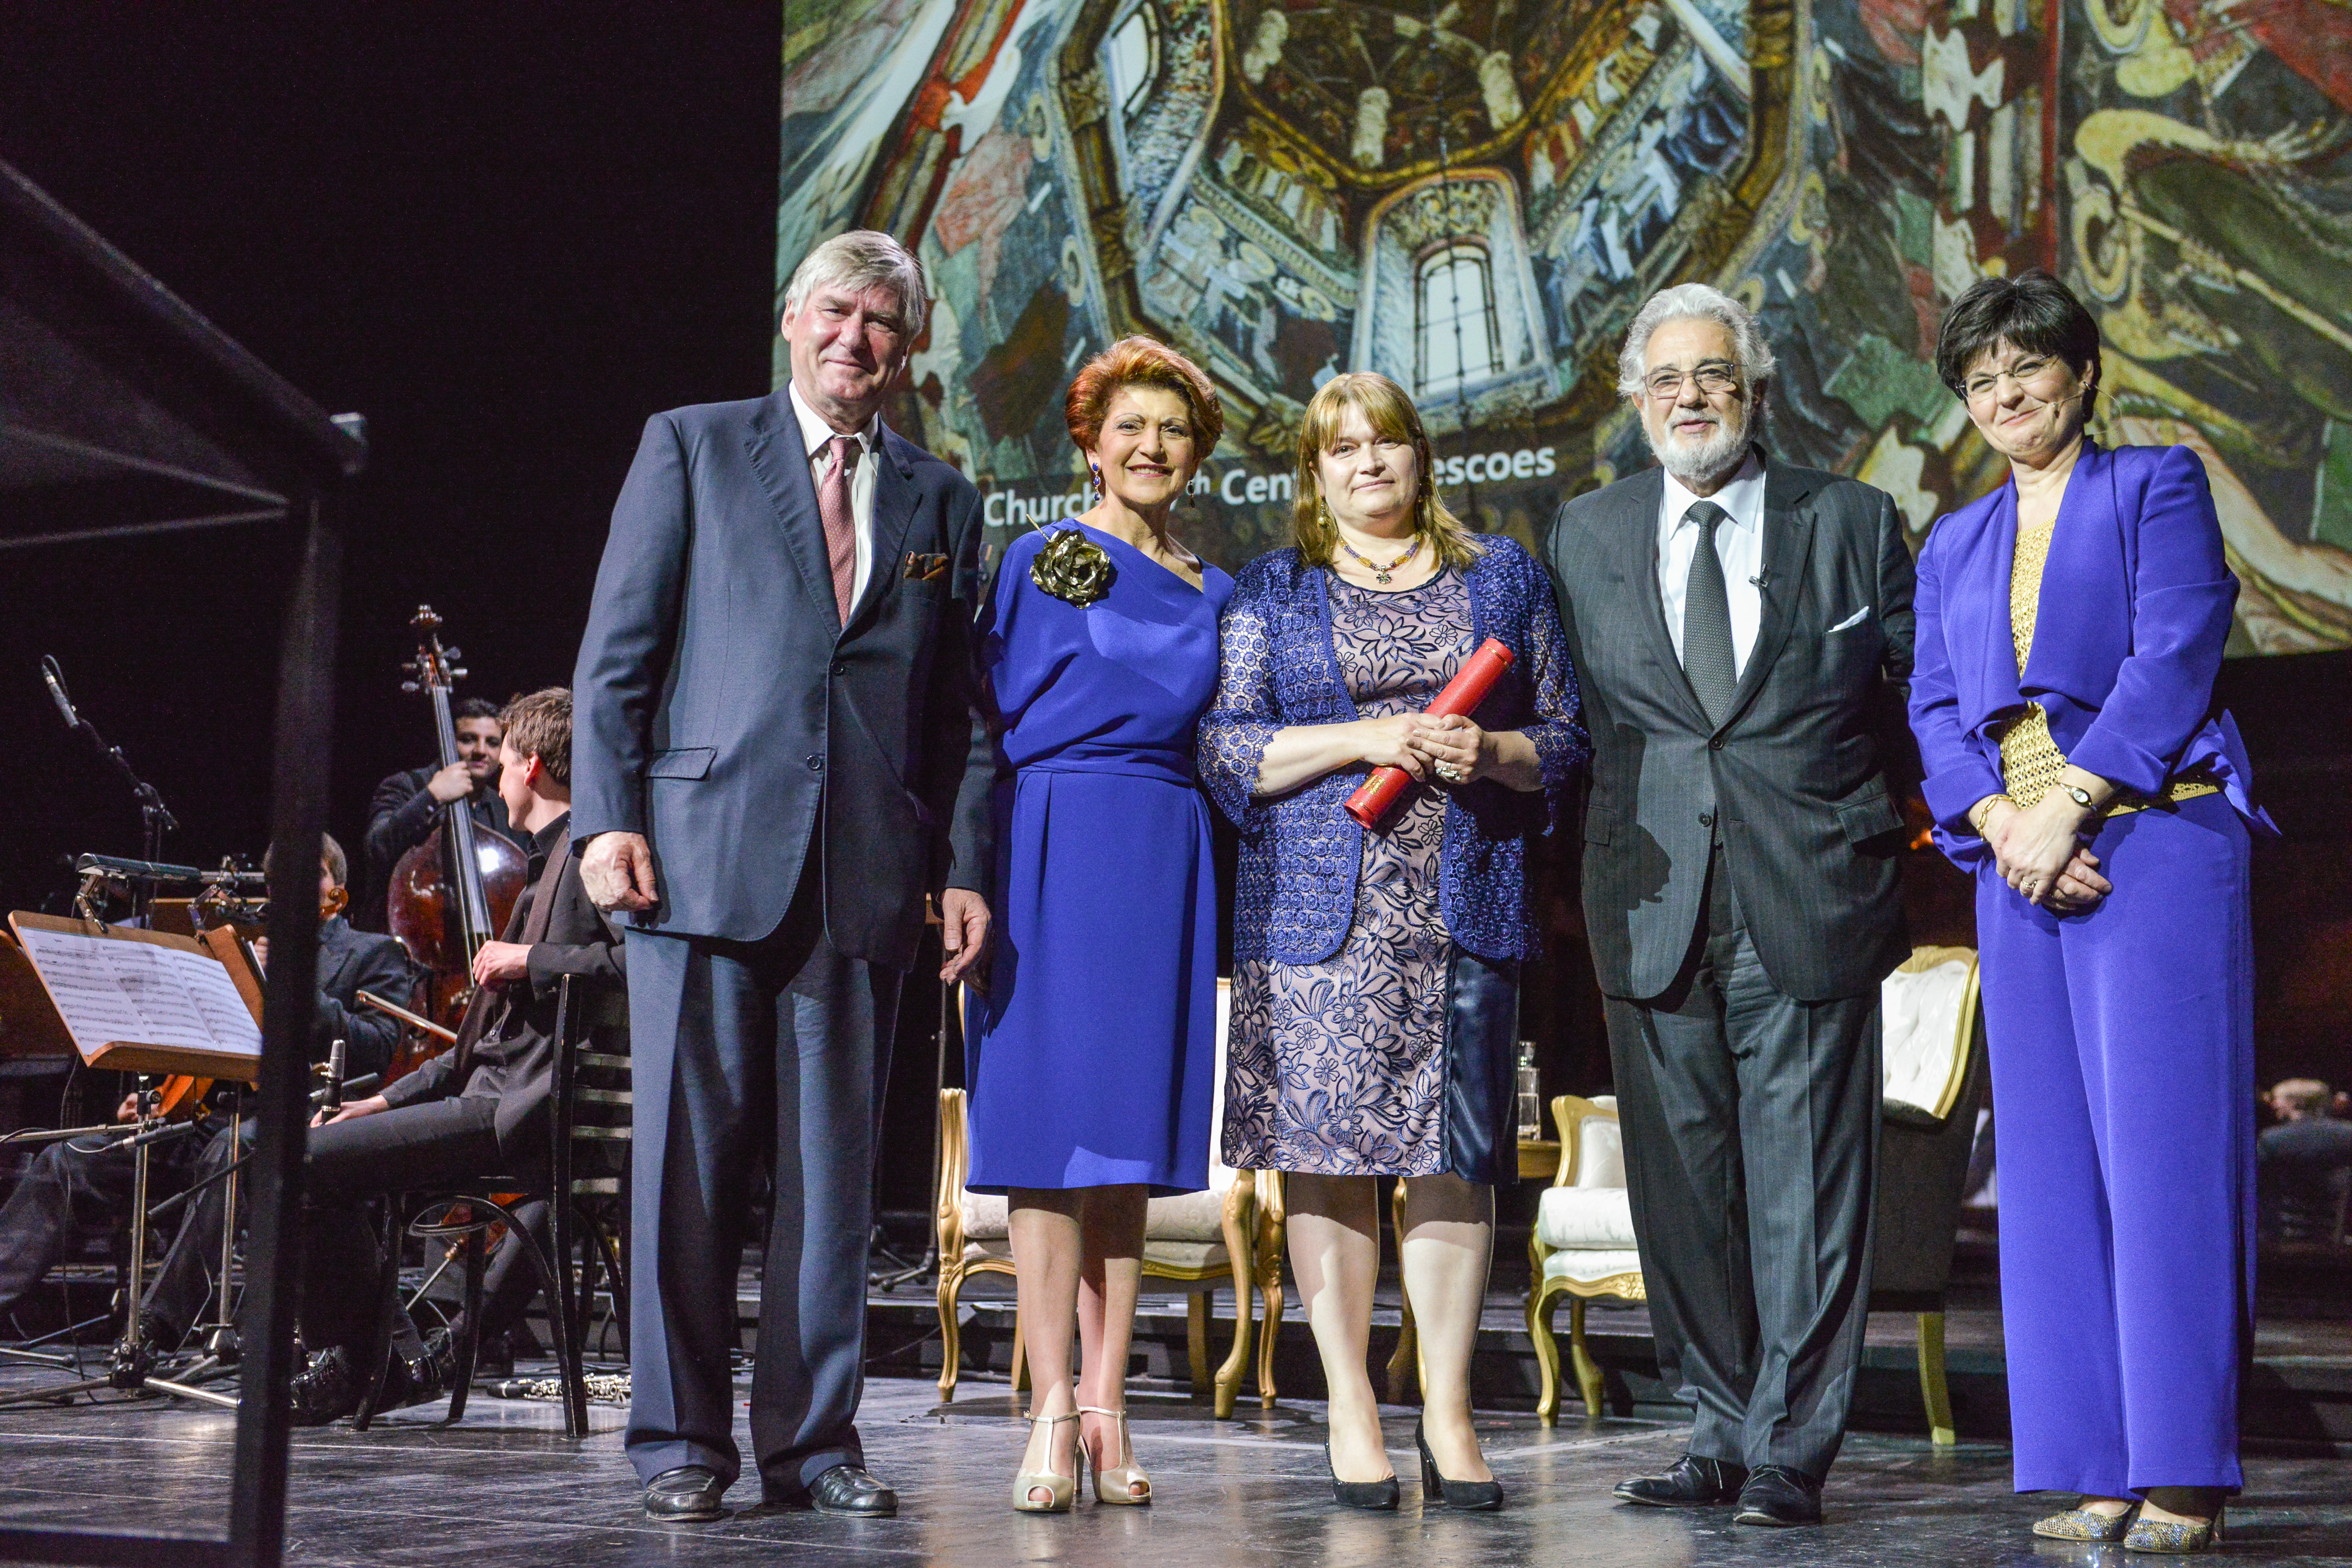 Denis de Kergorlay, Commissioner Vassiliou, winner of the Public Choice Award, Maestro Plácido Domingo, and Sneška Quaedvlieg-Mihailović at the European Heritage Awards Ceremony at the Burgtheater in Vienna on 5 May 2014. Photo: Oreste Schaller.